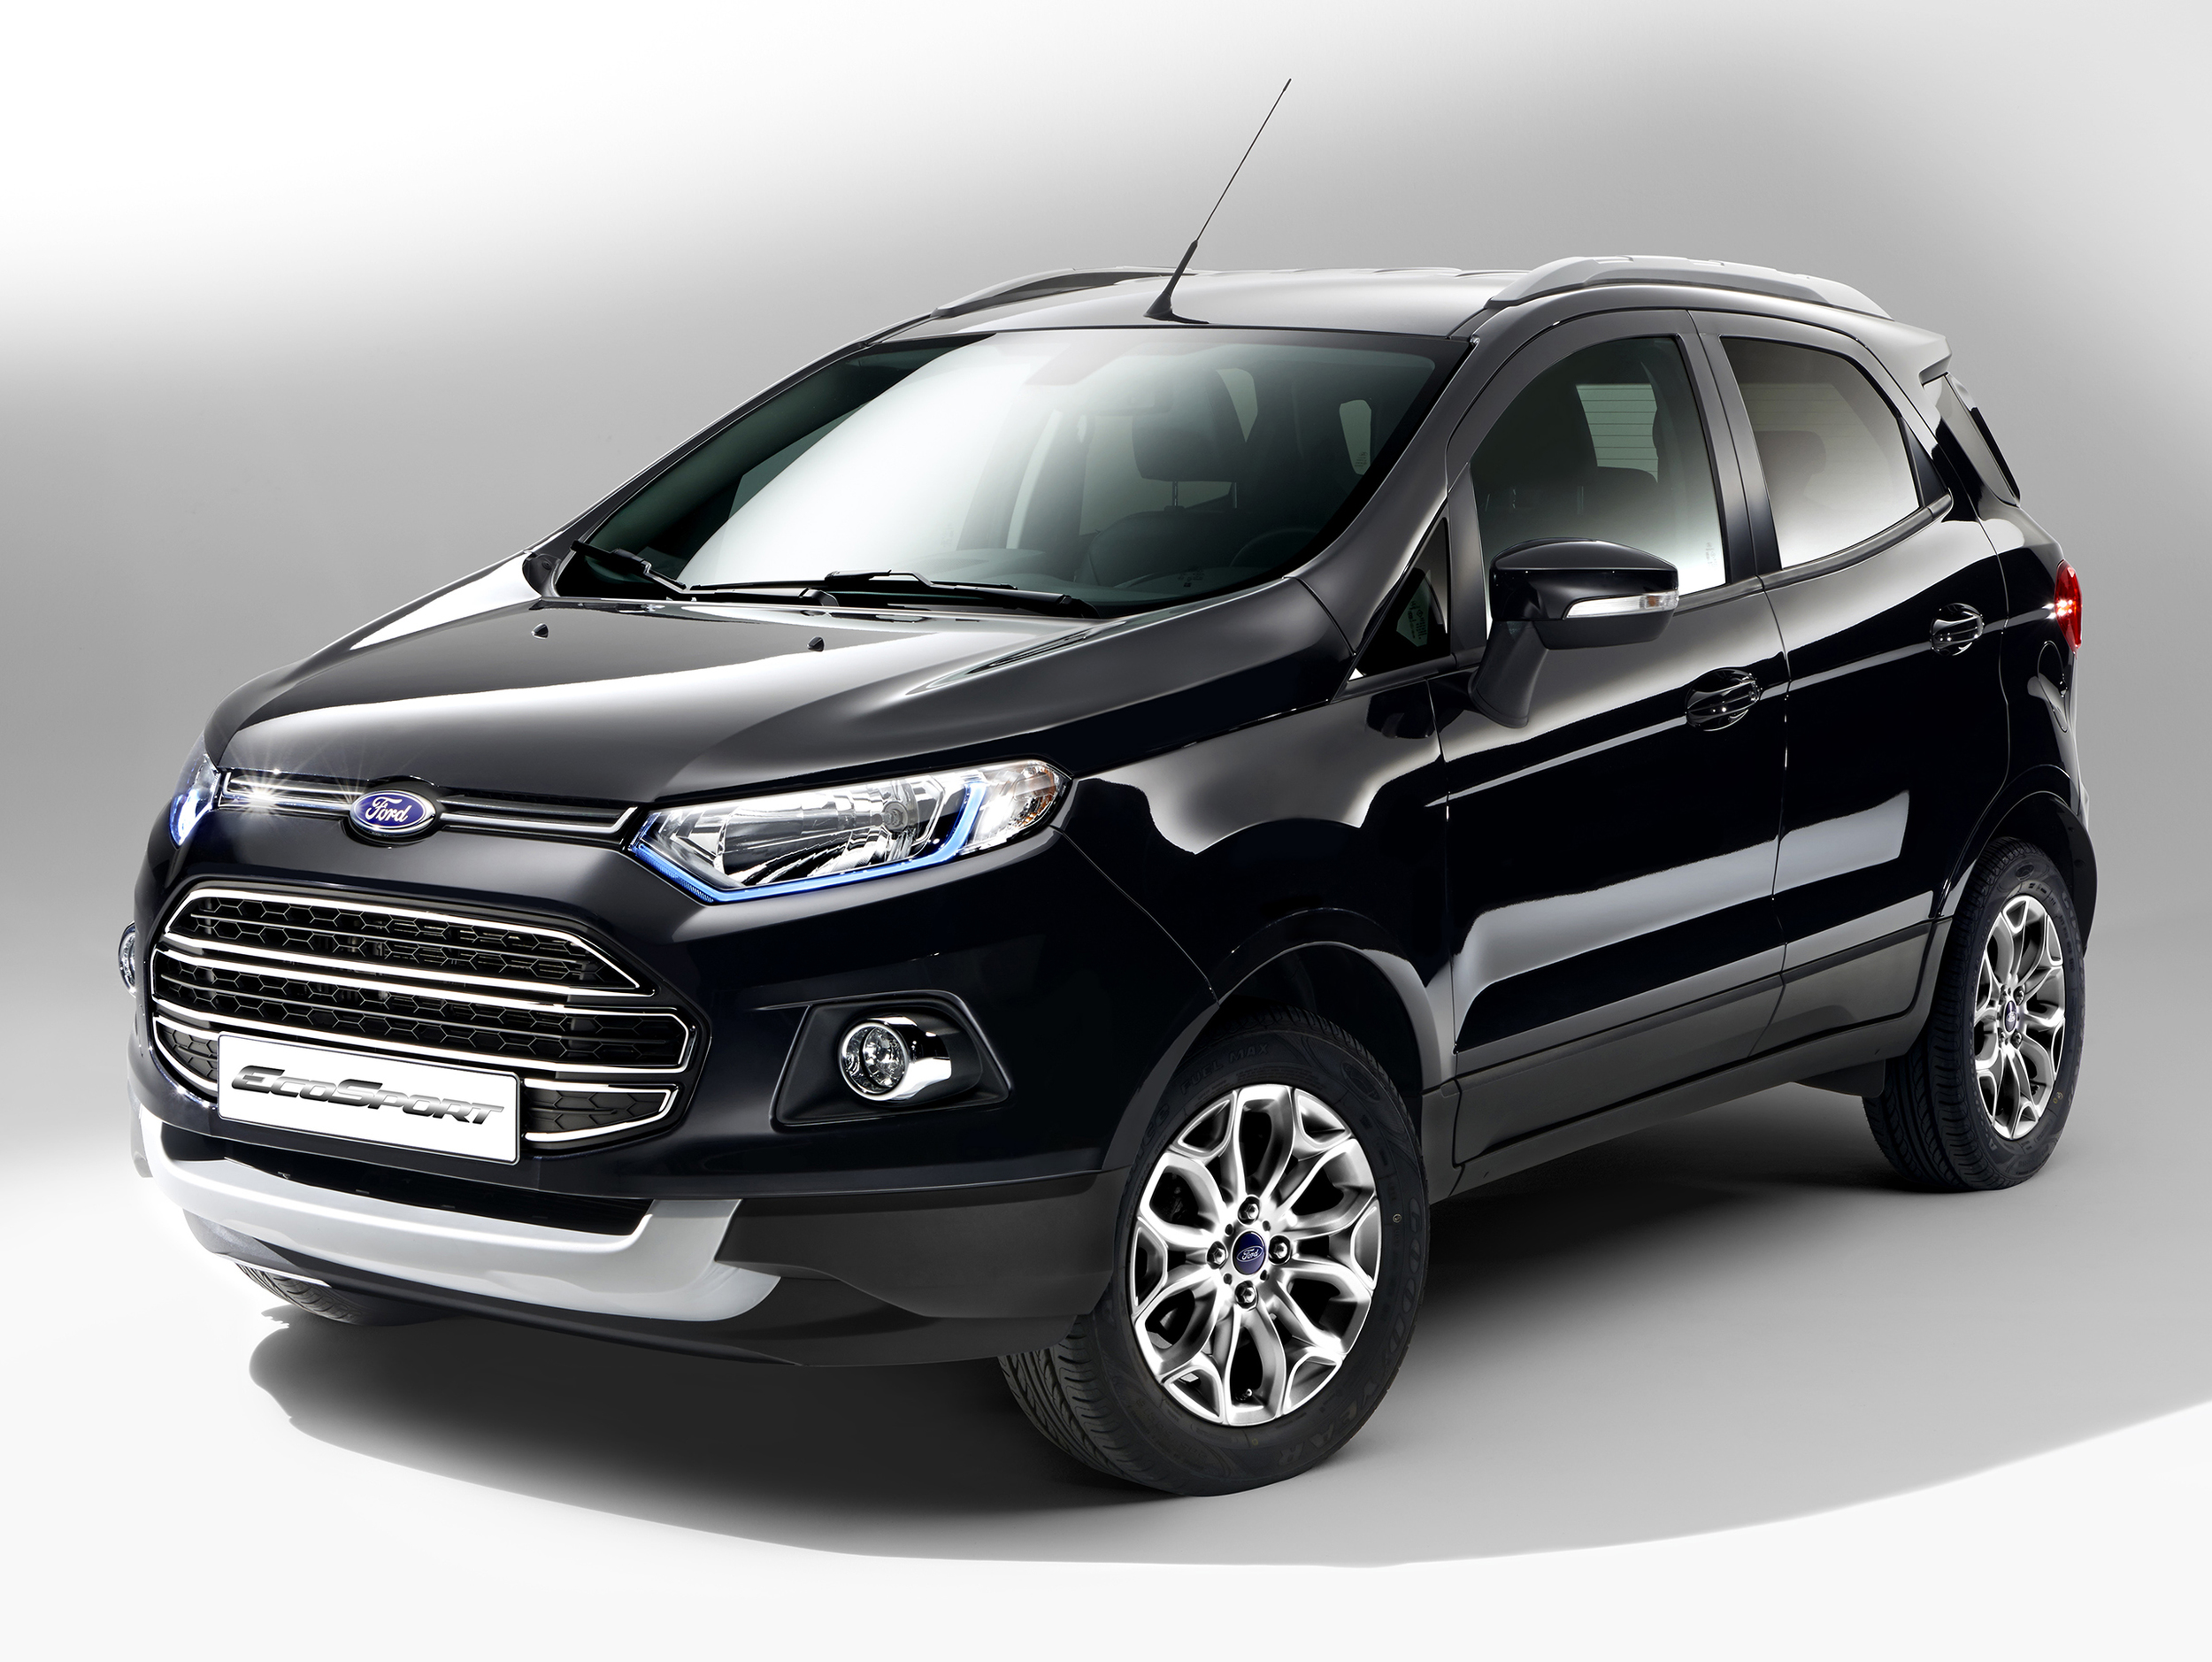 Ford EcoSport gets new upgrades